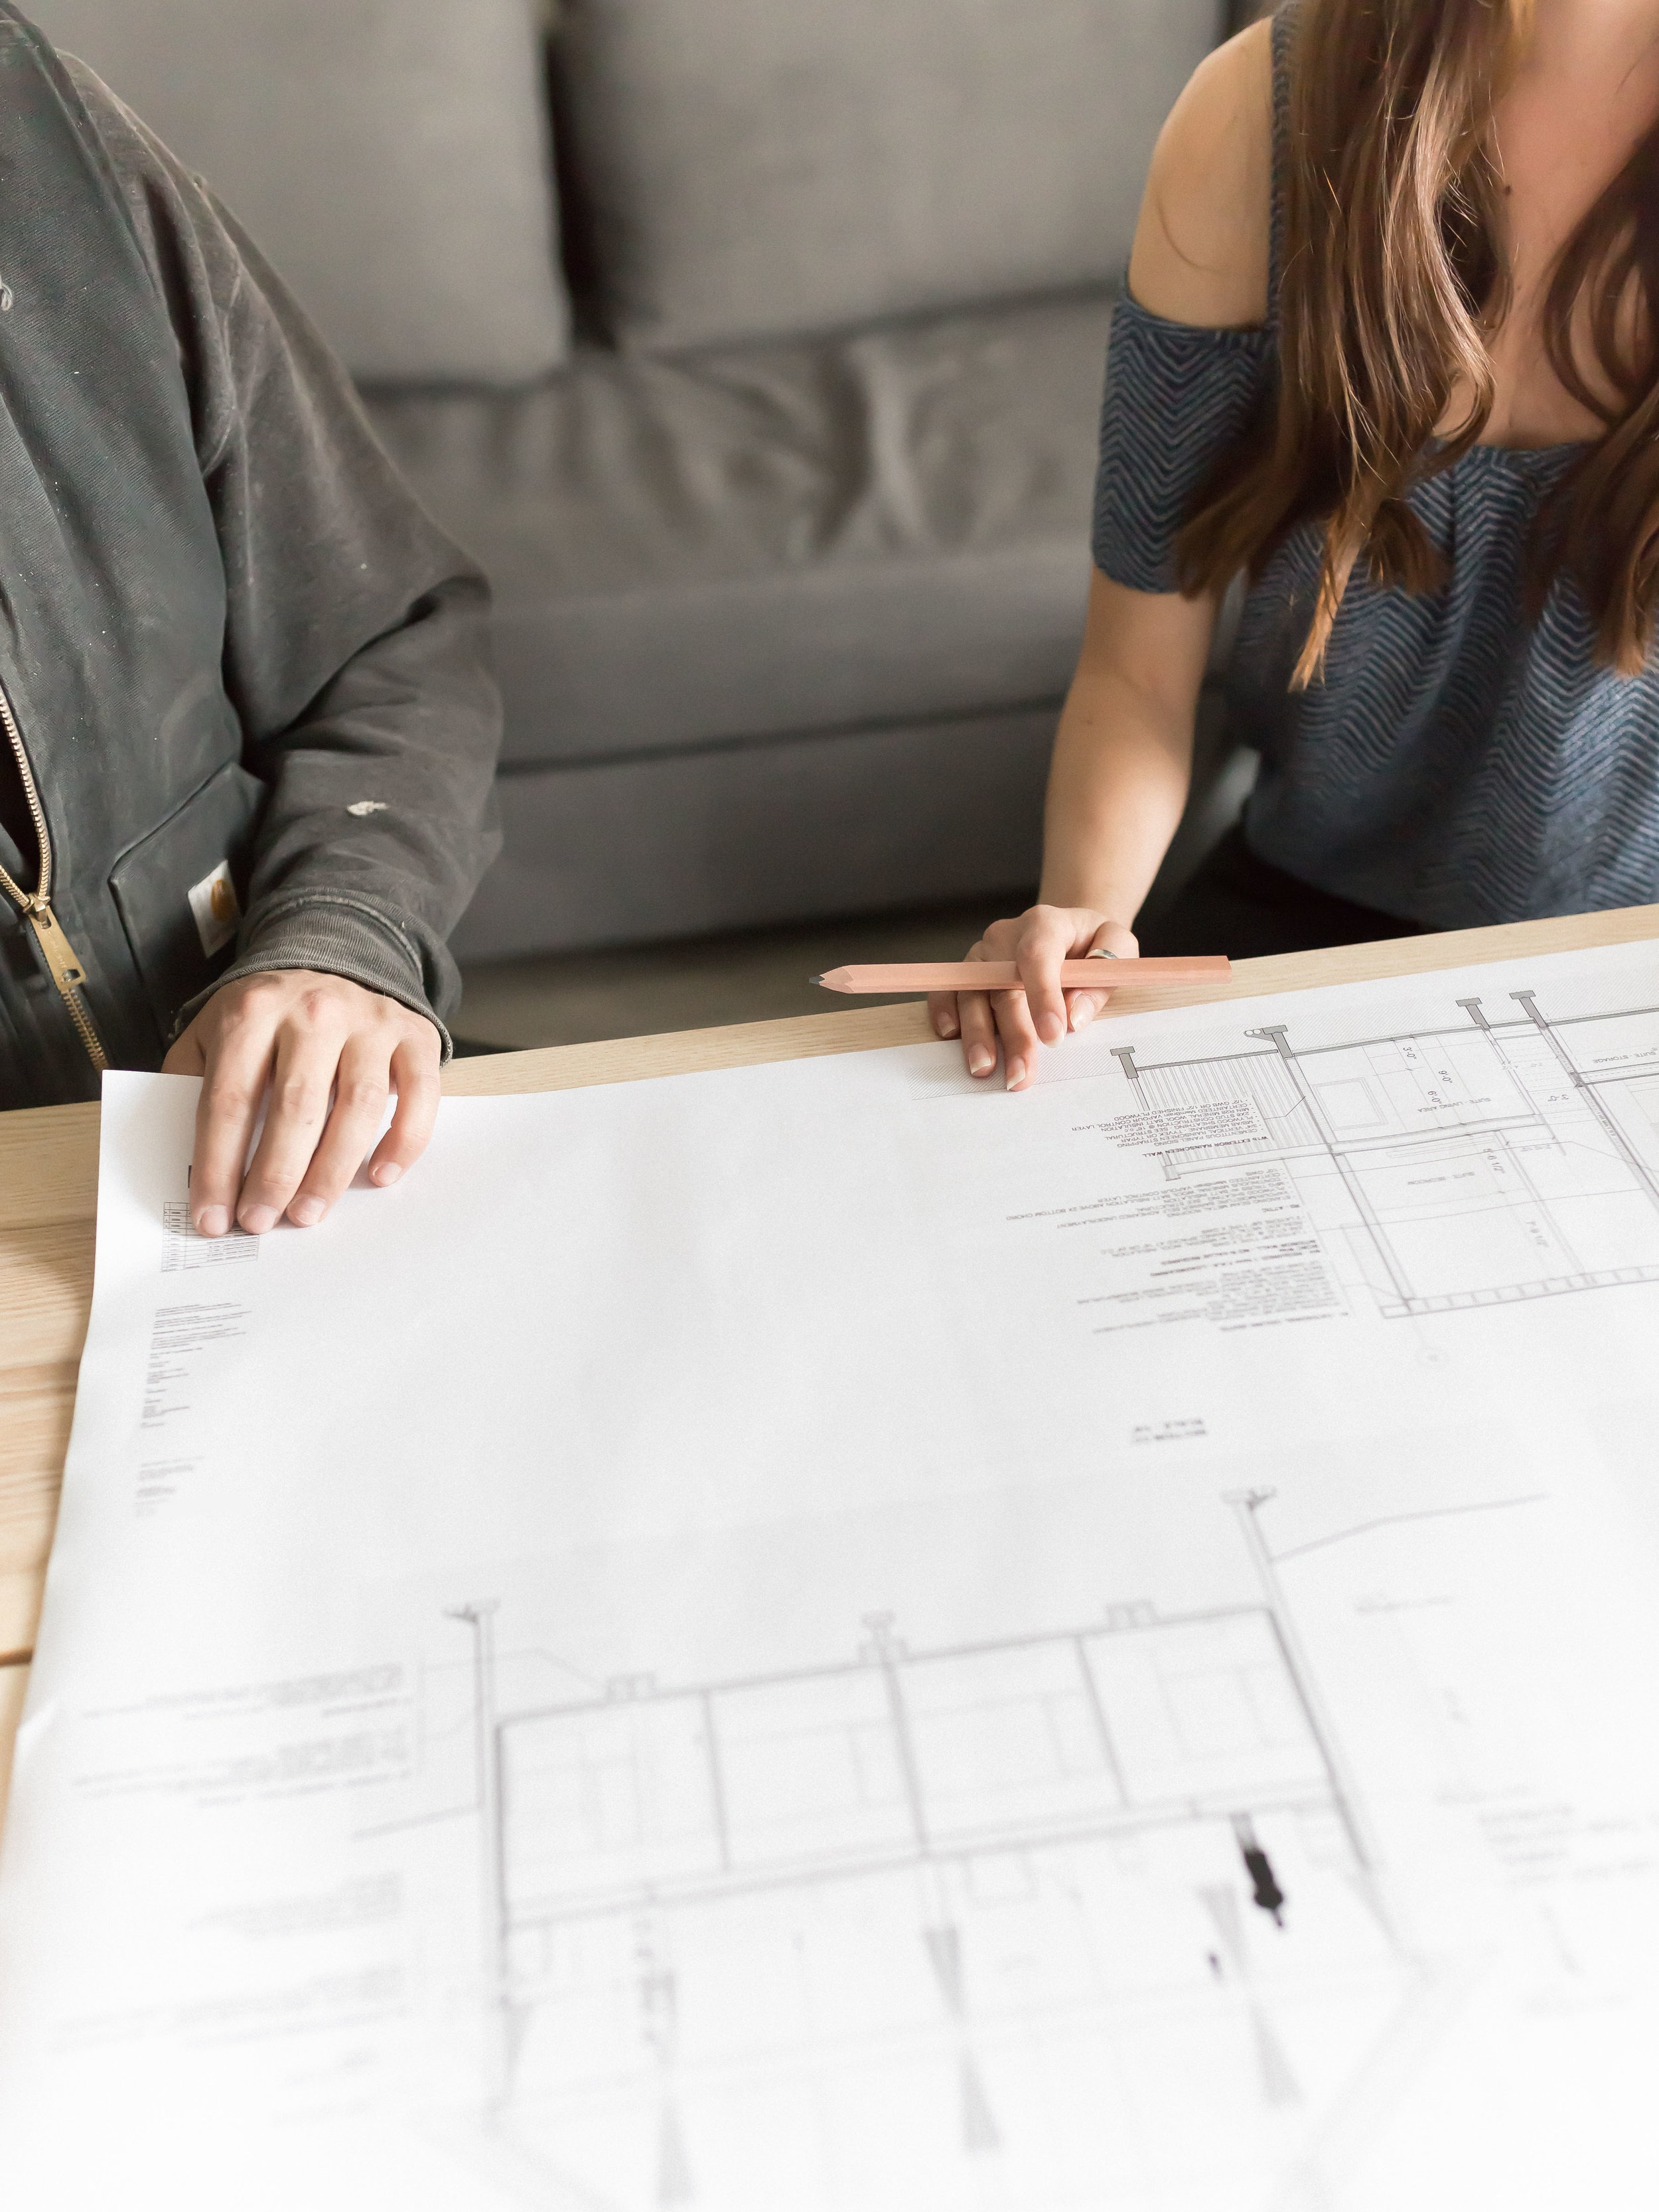 designed for your lifestyle - Our homes speak for themselves - what you can't see is the experience. A simplified process, client knowledge, and thoughtful design shape every detail that goes into a PDCo. home. Whether you're choosing a pre-designed plan or the flexibility of custom design, these add up to an experience that is anything but traditional.